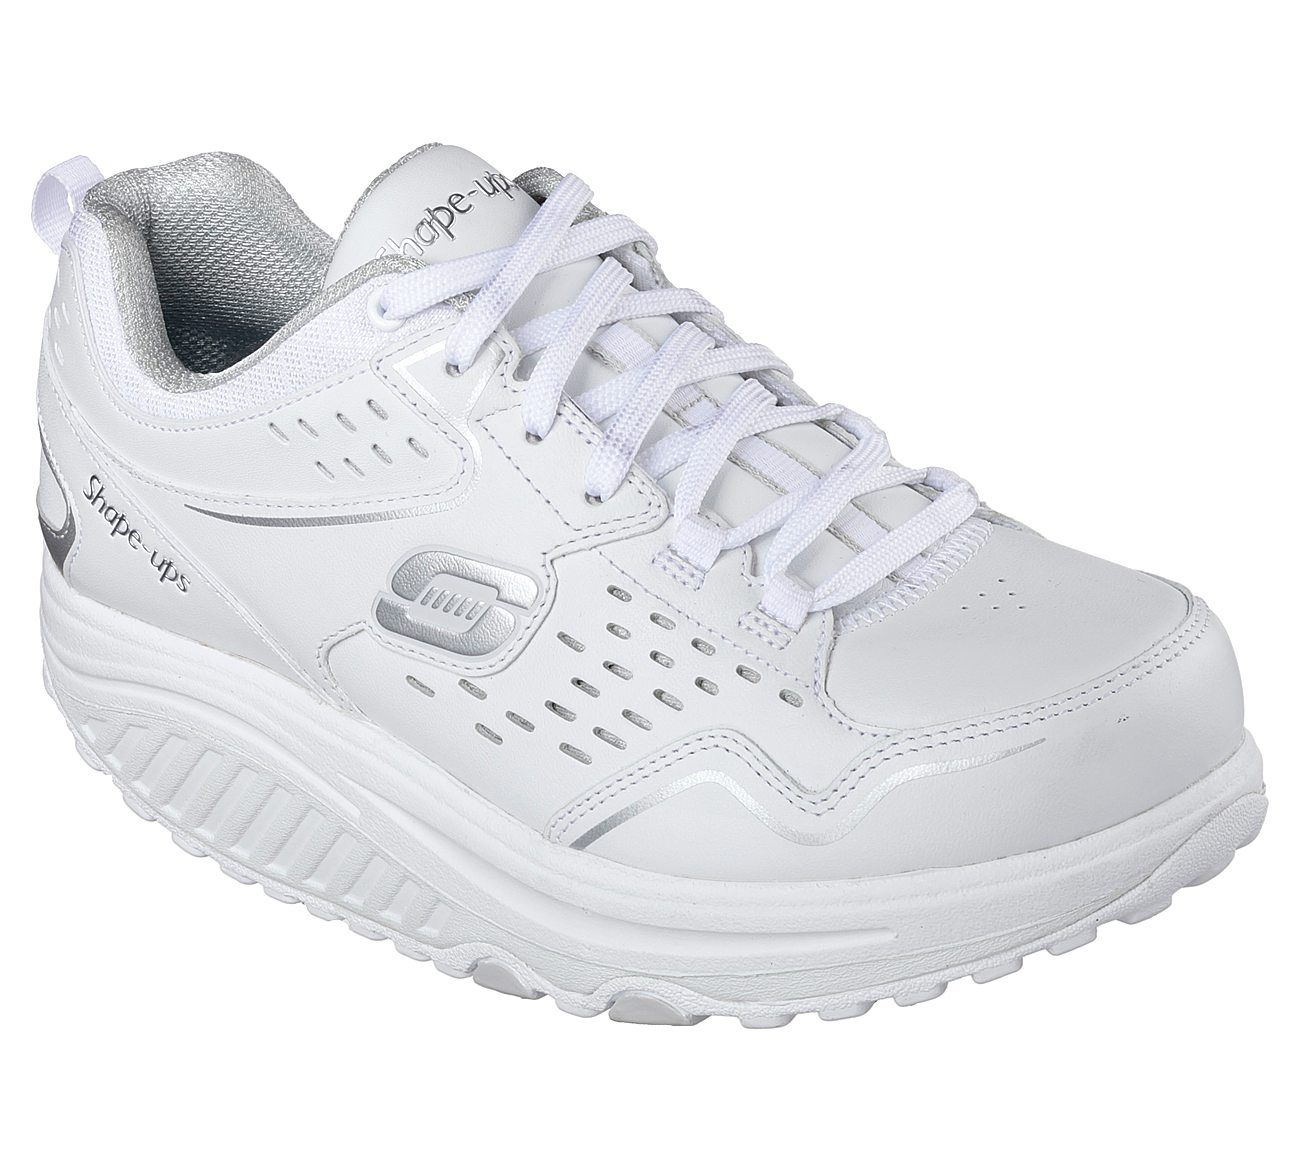 skechers shape ups nz price